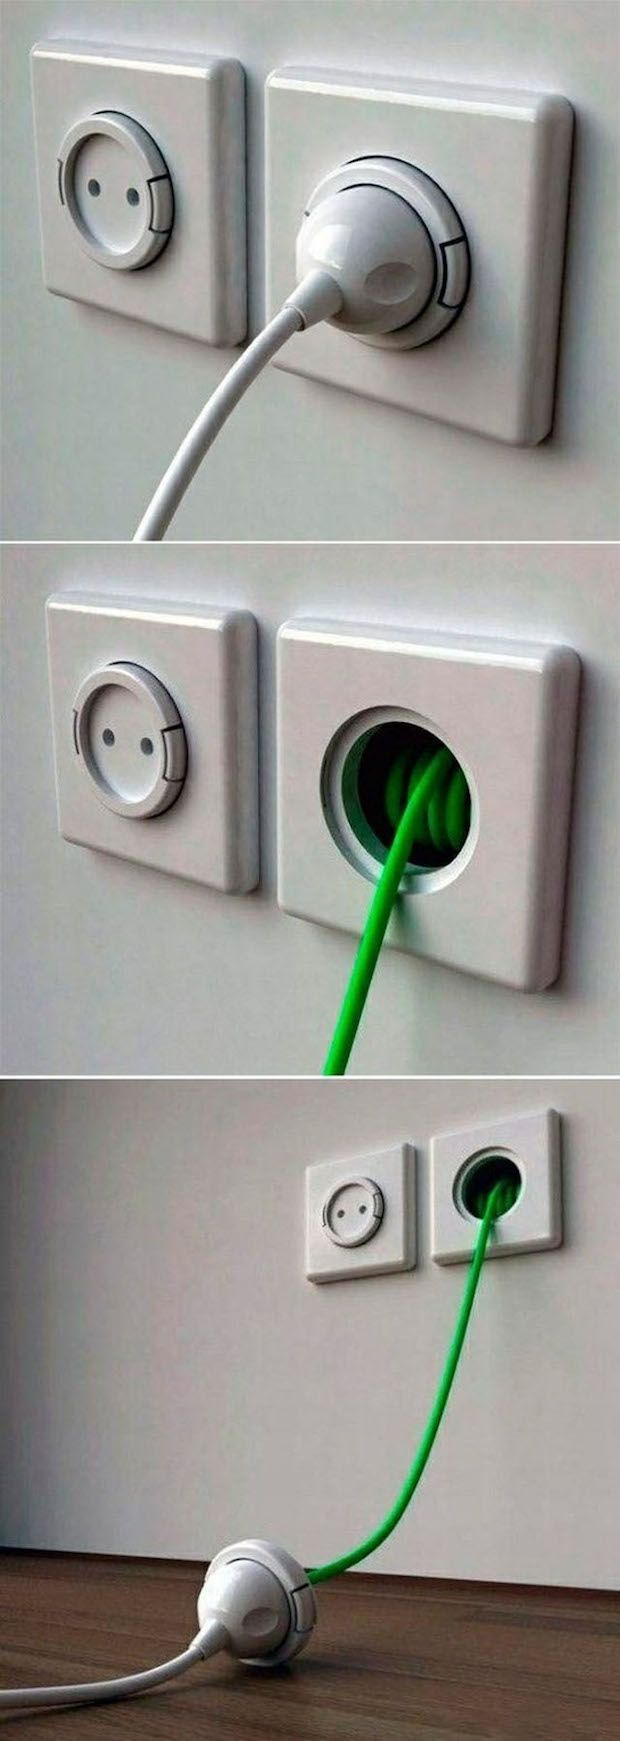 Hides away electrical cords which helps create a safe environment - Brad Read…